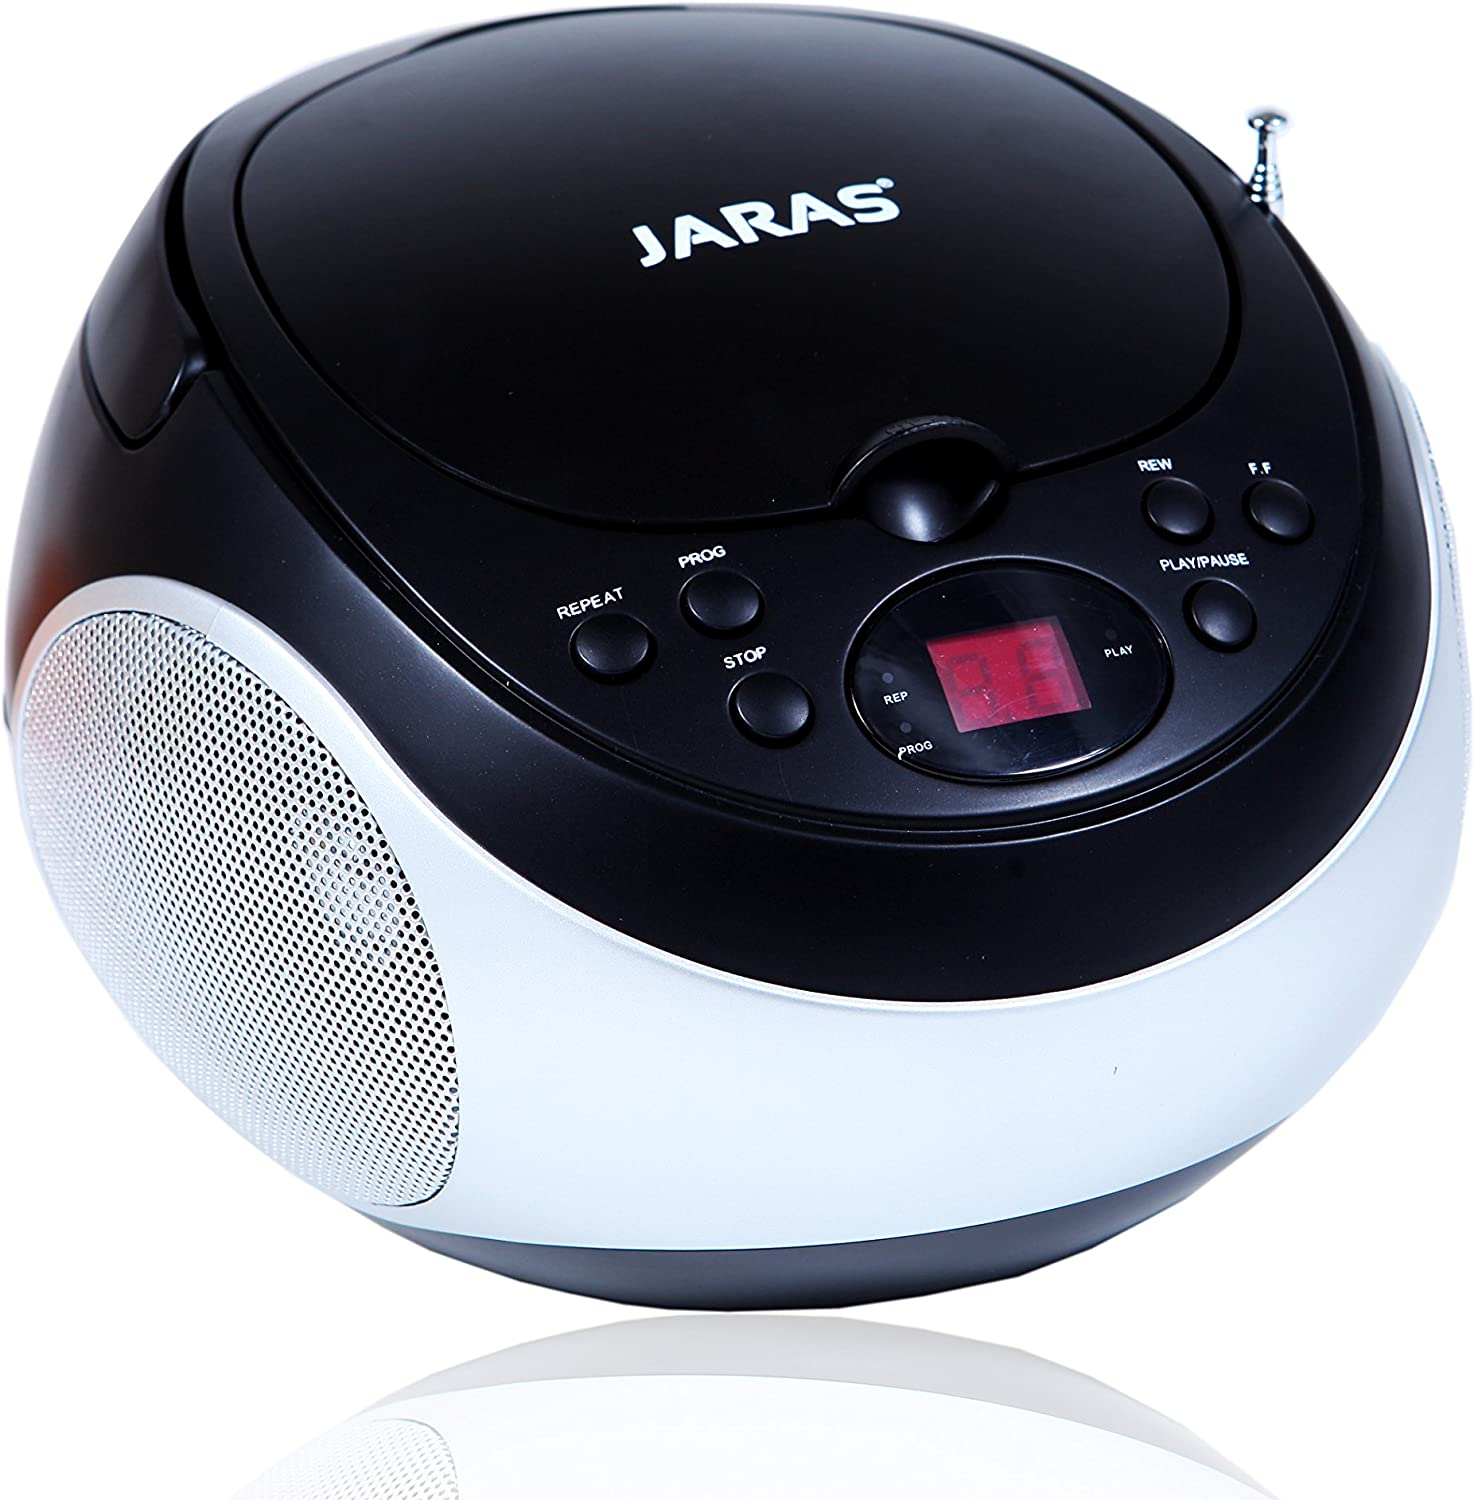 Jaras JJ-Box89 Sport Portable Stereo CD Player with AM/FM Stereo Radio and Headphone Jack